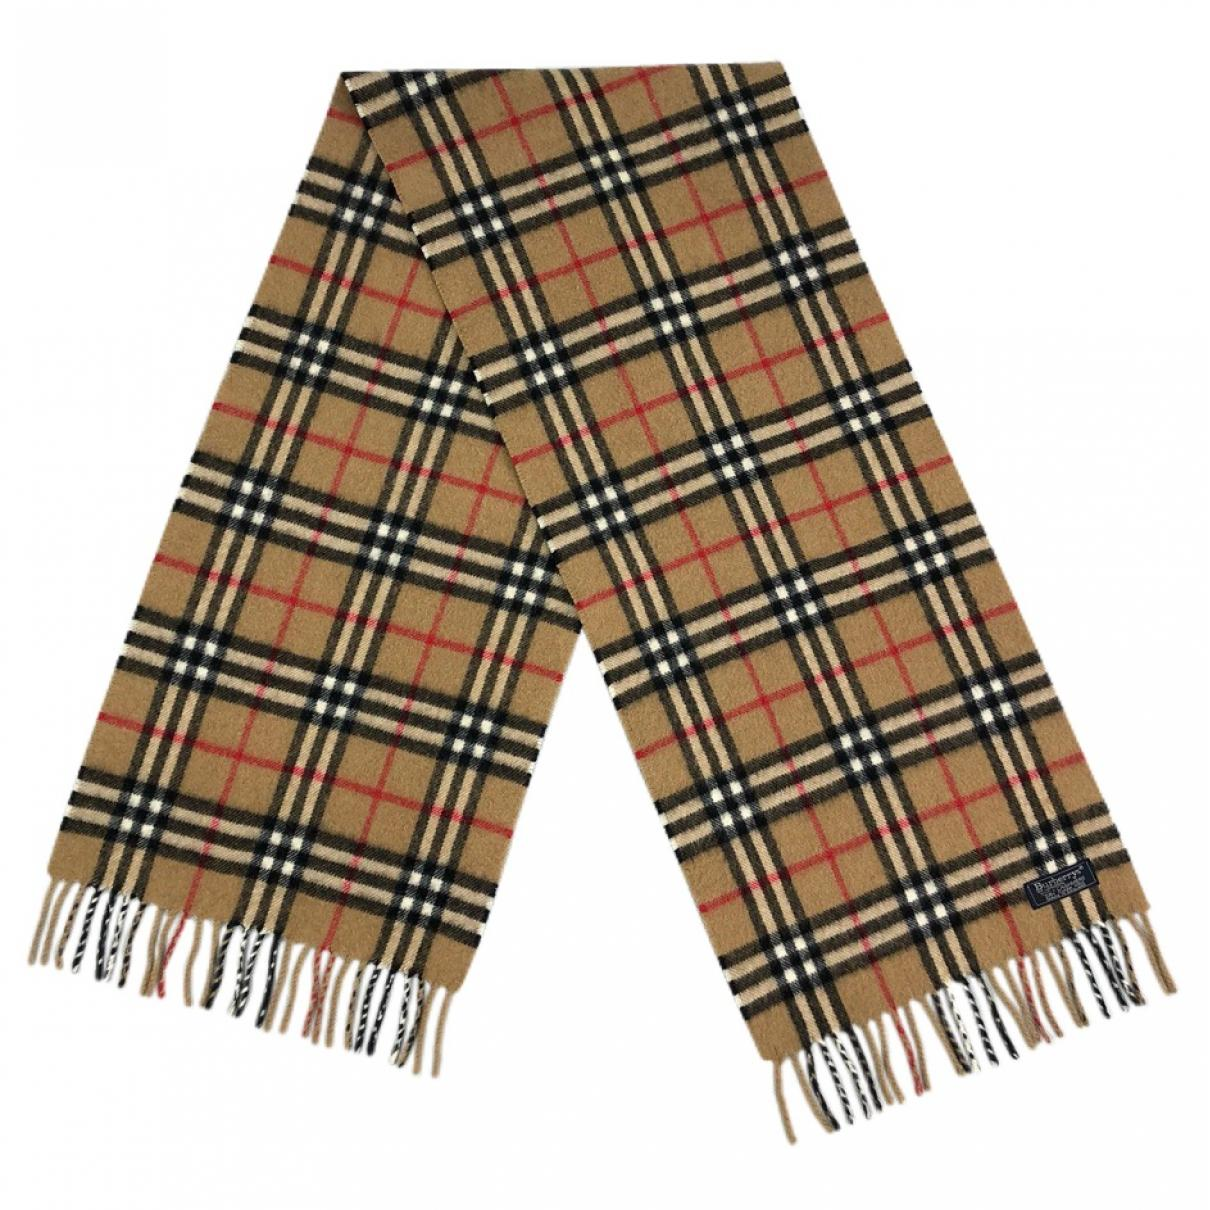 ea8a197a7429 Burberry. Women s Natural Pre-owned Vintage Beige Cashmere Scarves. £137  From Vestiaire Collective